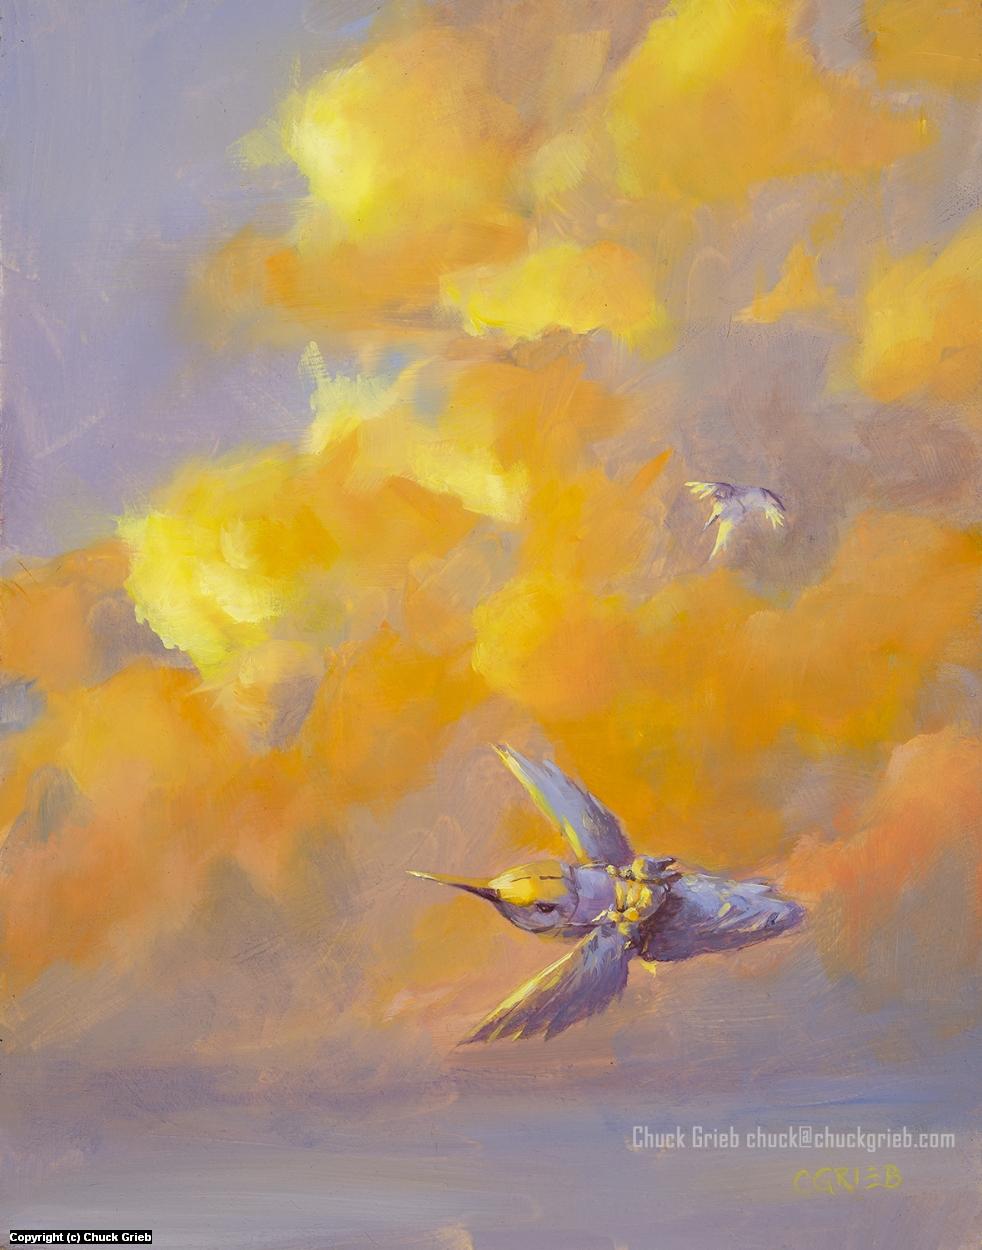 Hummingbird Clouds Artwork by Chuck Grieb